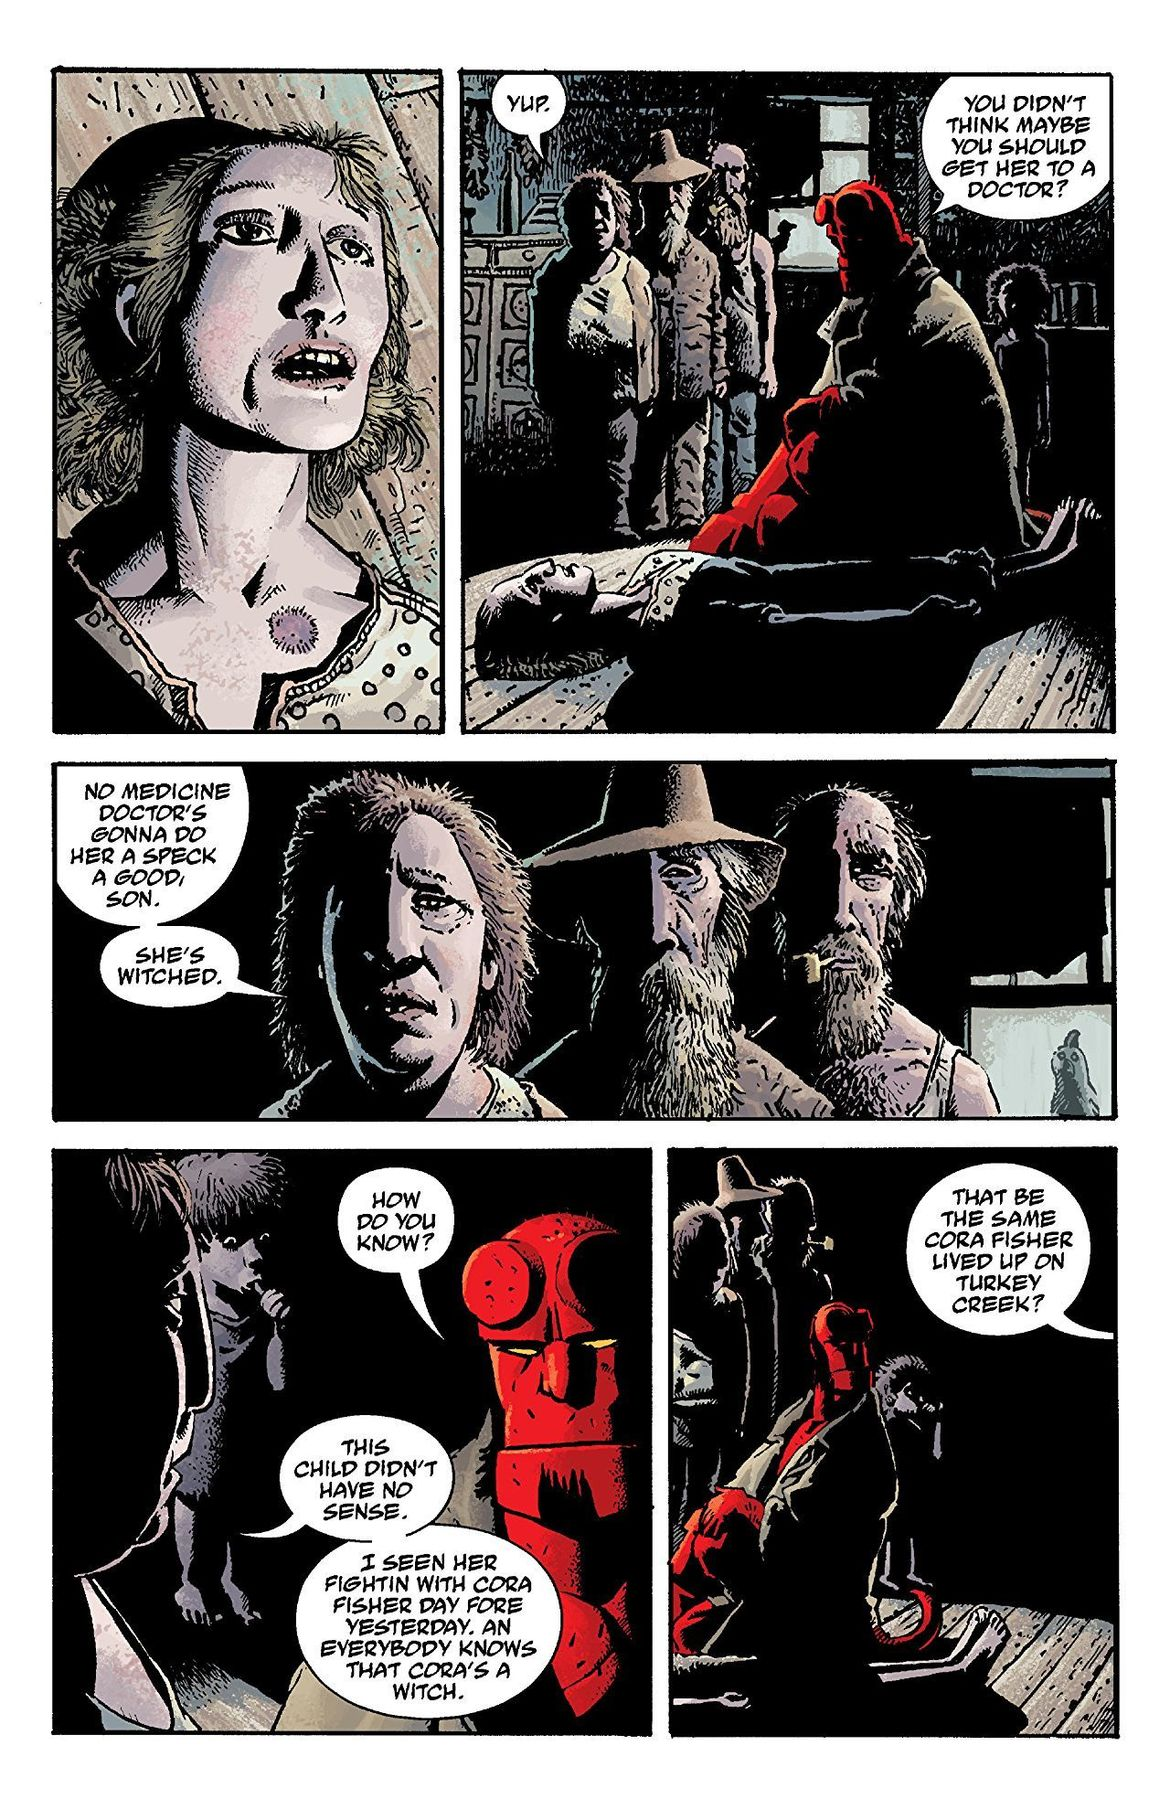 Hellboy: The Crooked Man #1 interior page